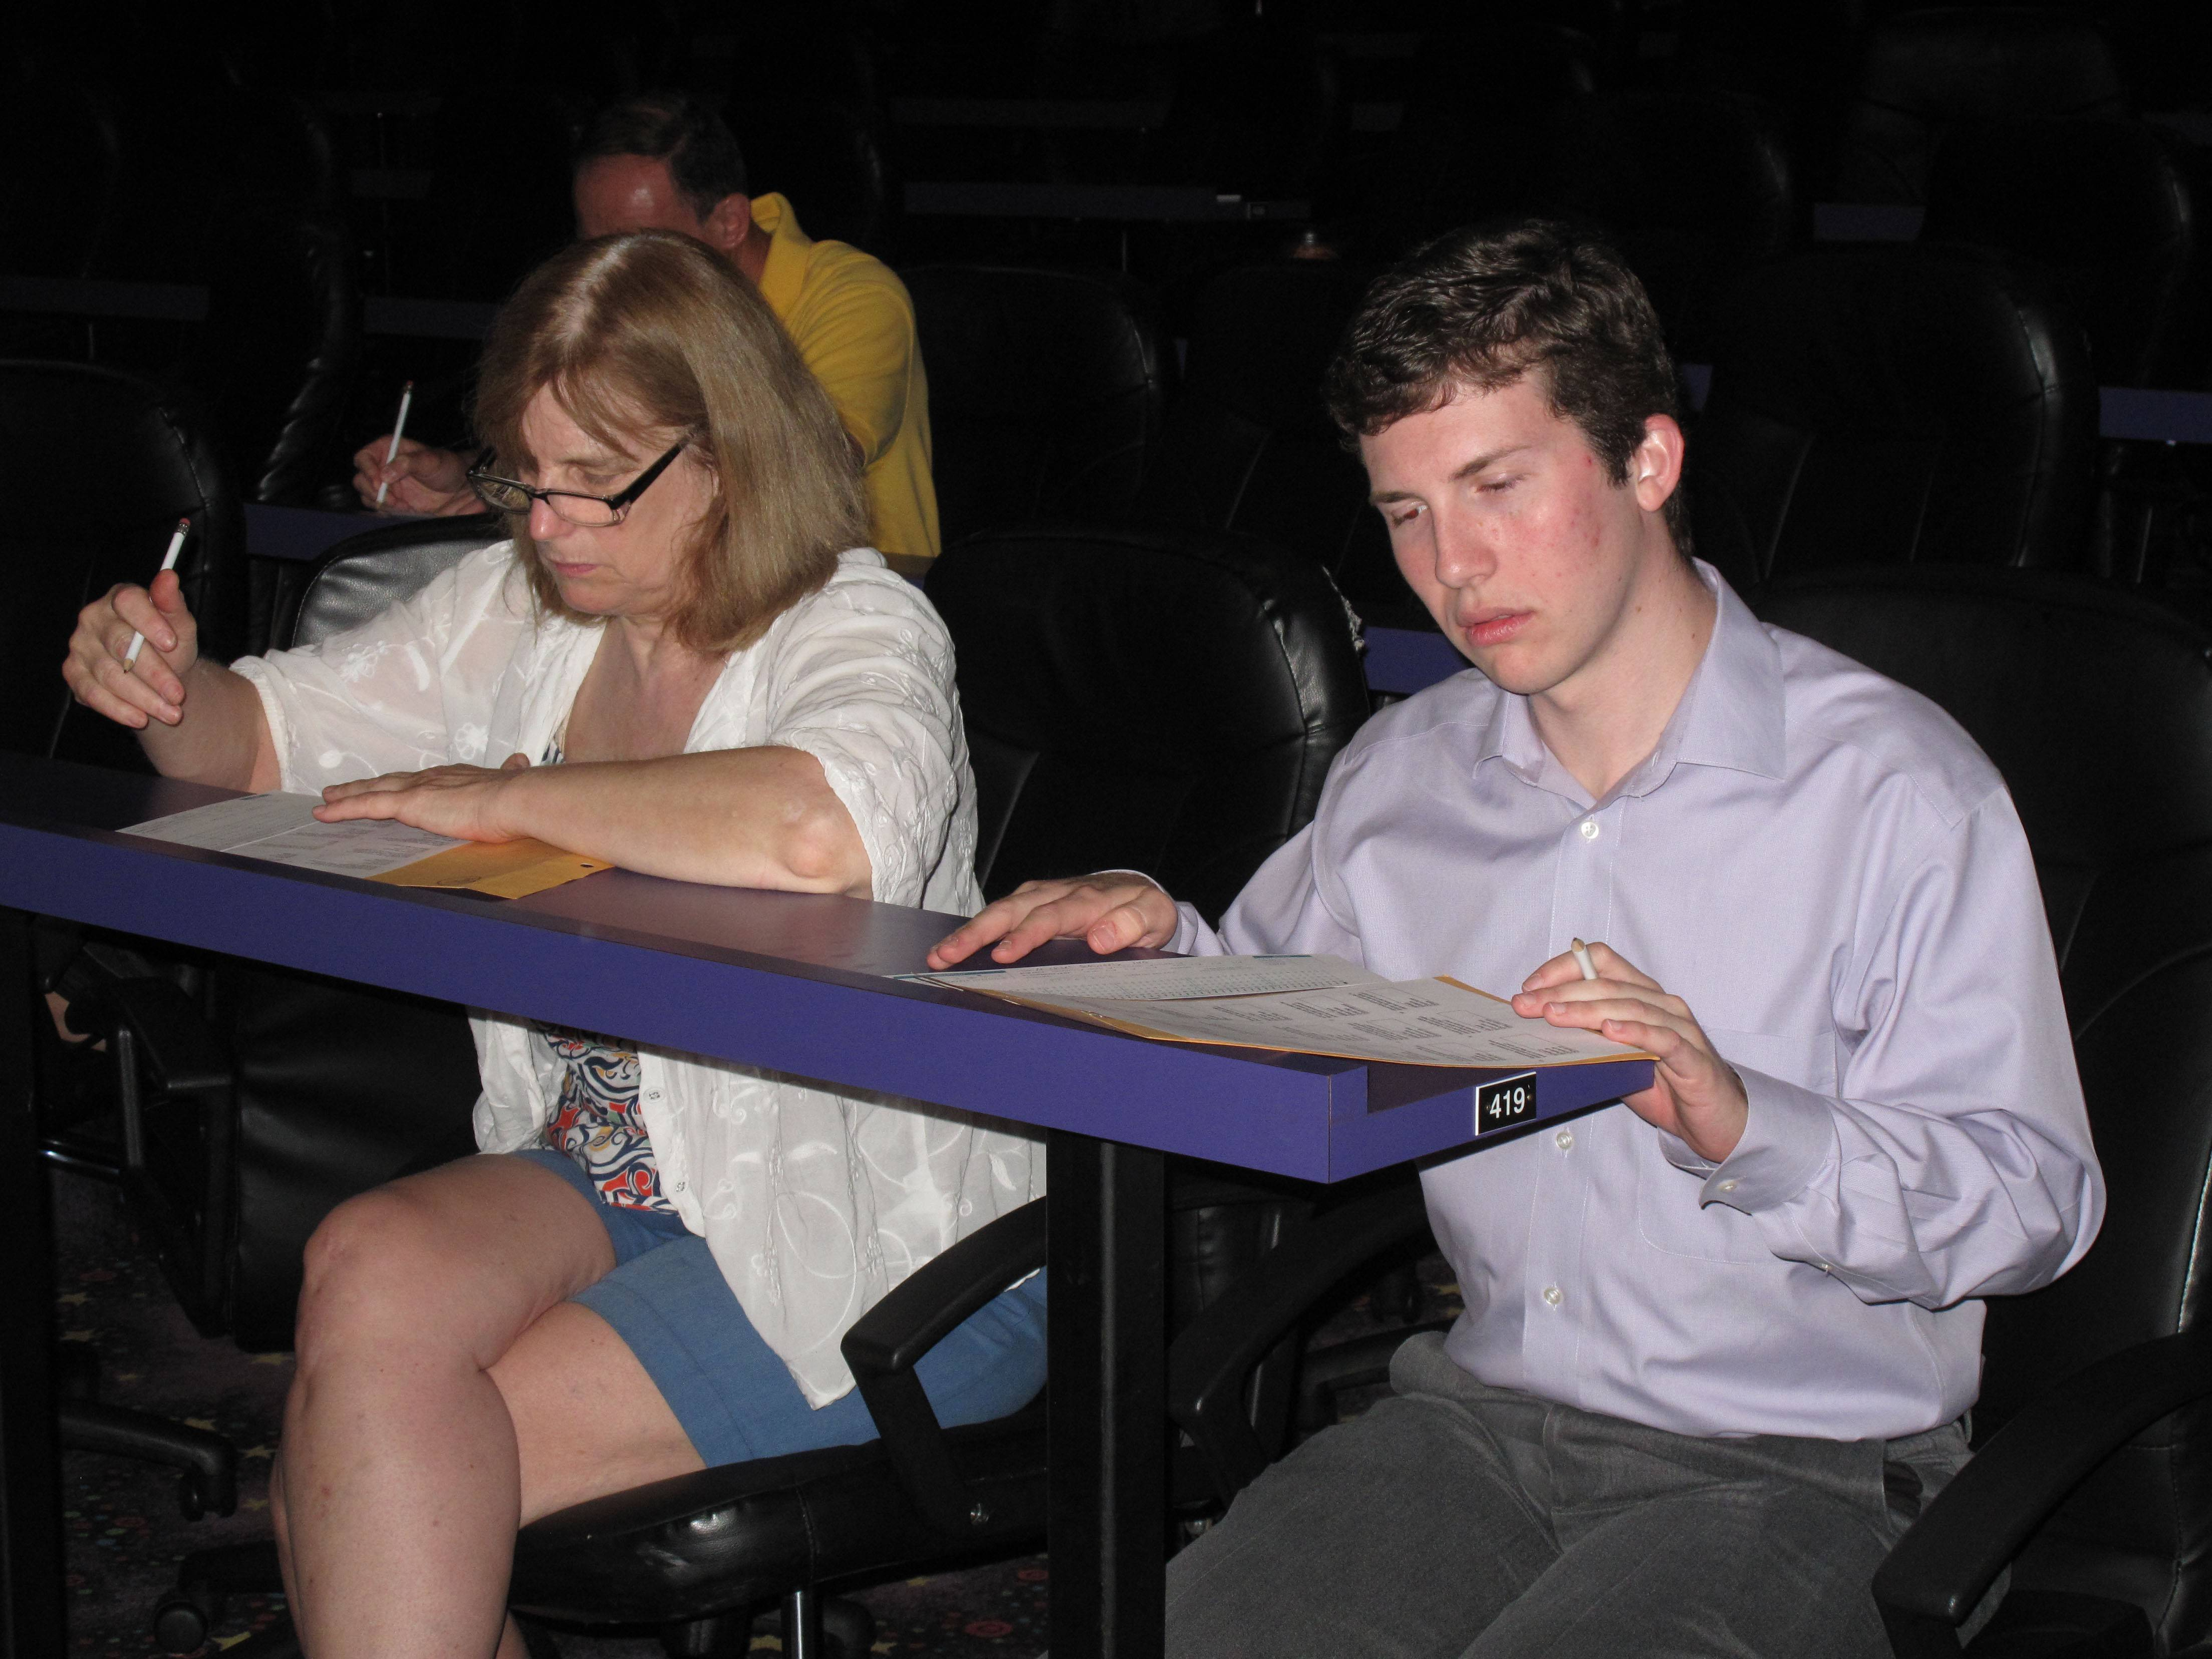 "Hilde Elg of Glen Ellyn and Michael Schwartz of Chicago begin taking a test during an audition Friday morning for the game show ""Who Wants To Be A Millionaire"" at Hollywood Palms cinema in Naperville. Both scored well enough on the test to qualify for an in-person interview with one of the show's associate producers."